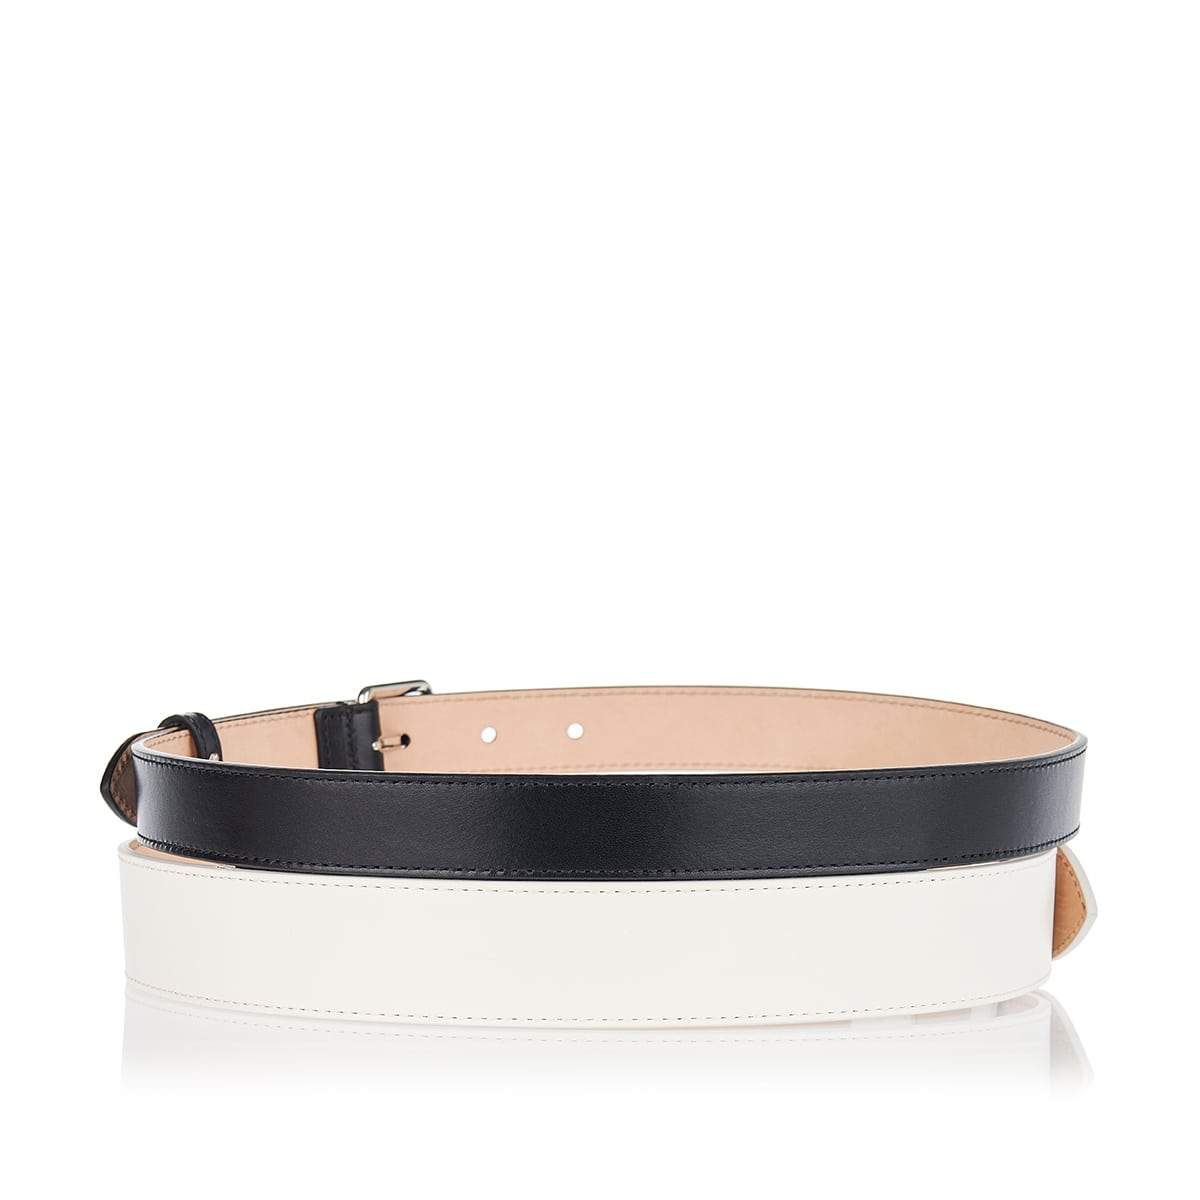 Two-tone leather double belt